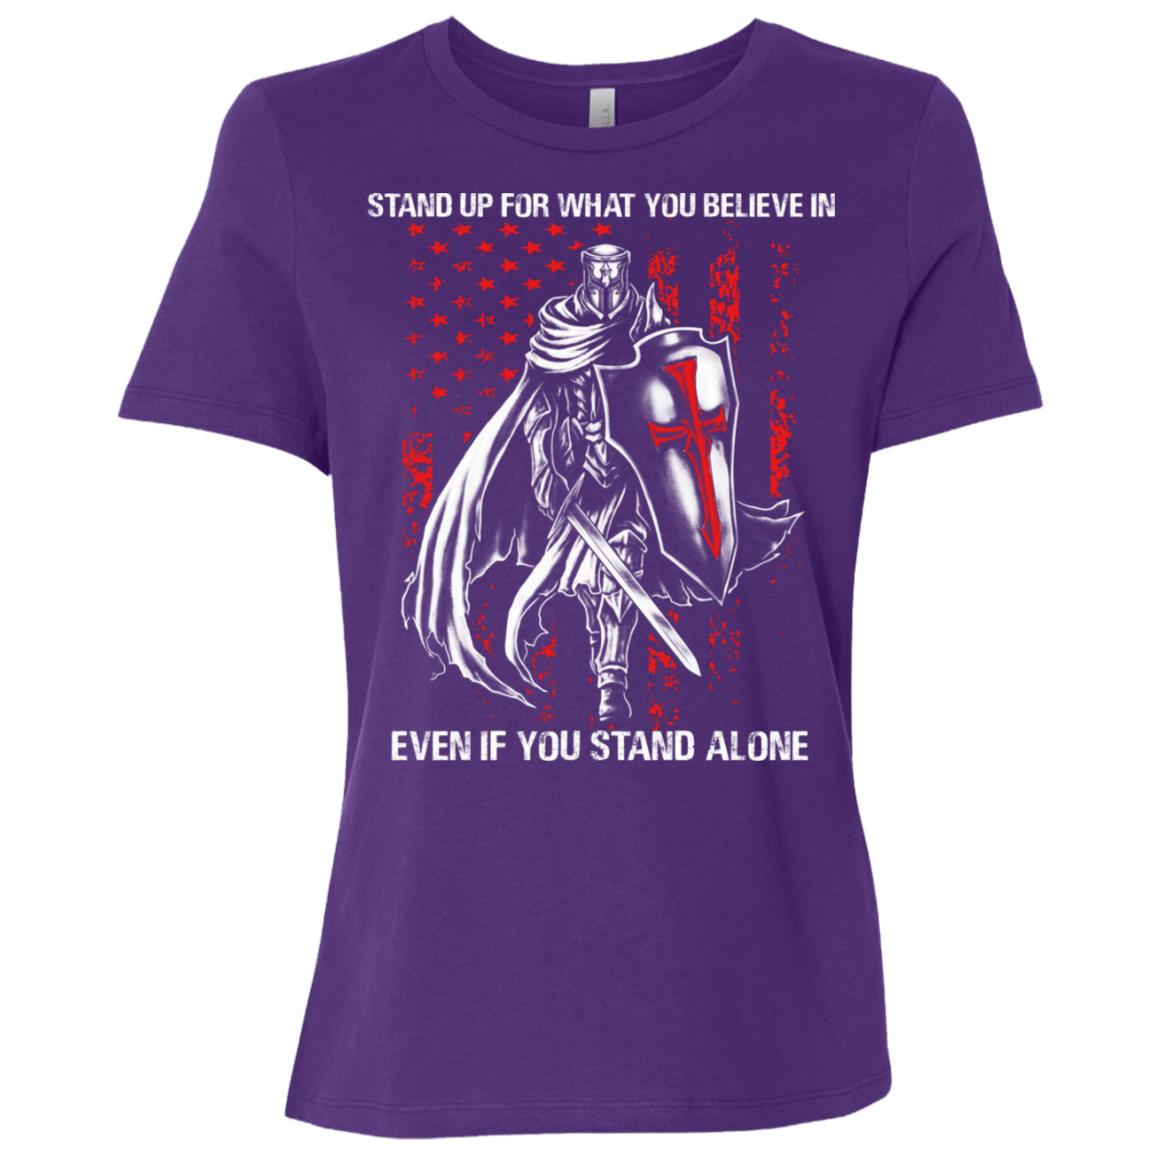 Knight Templar Stand up for what you believe in Women Short Sleeve T-Shirt